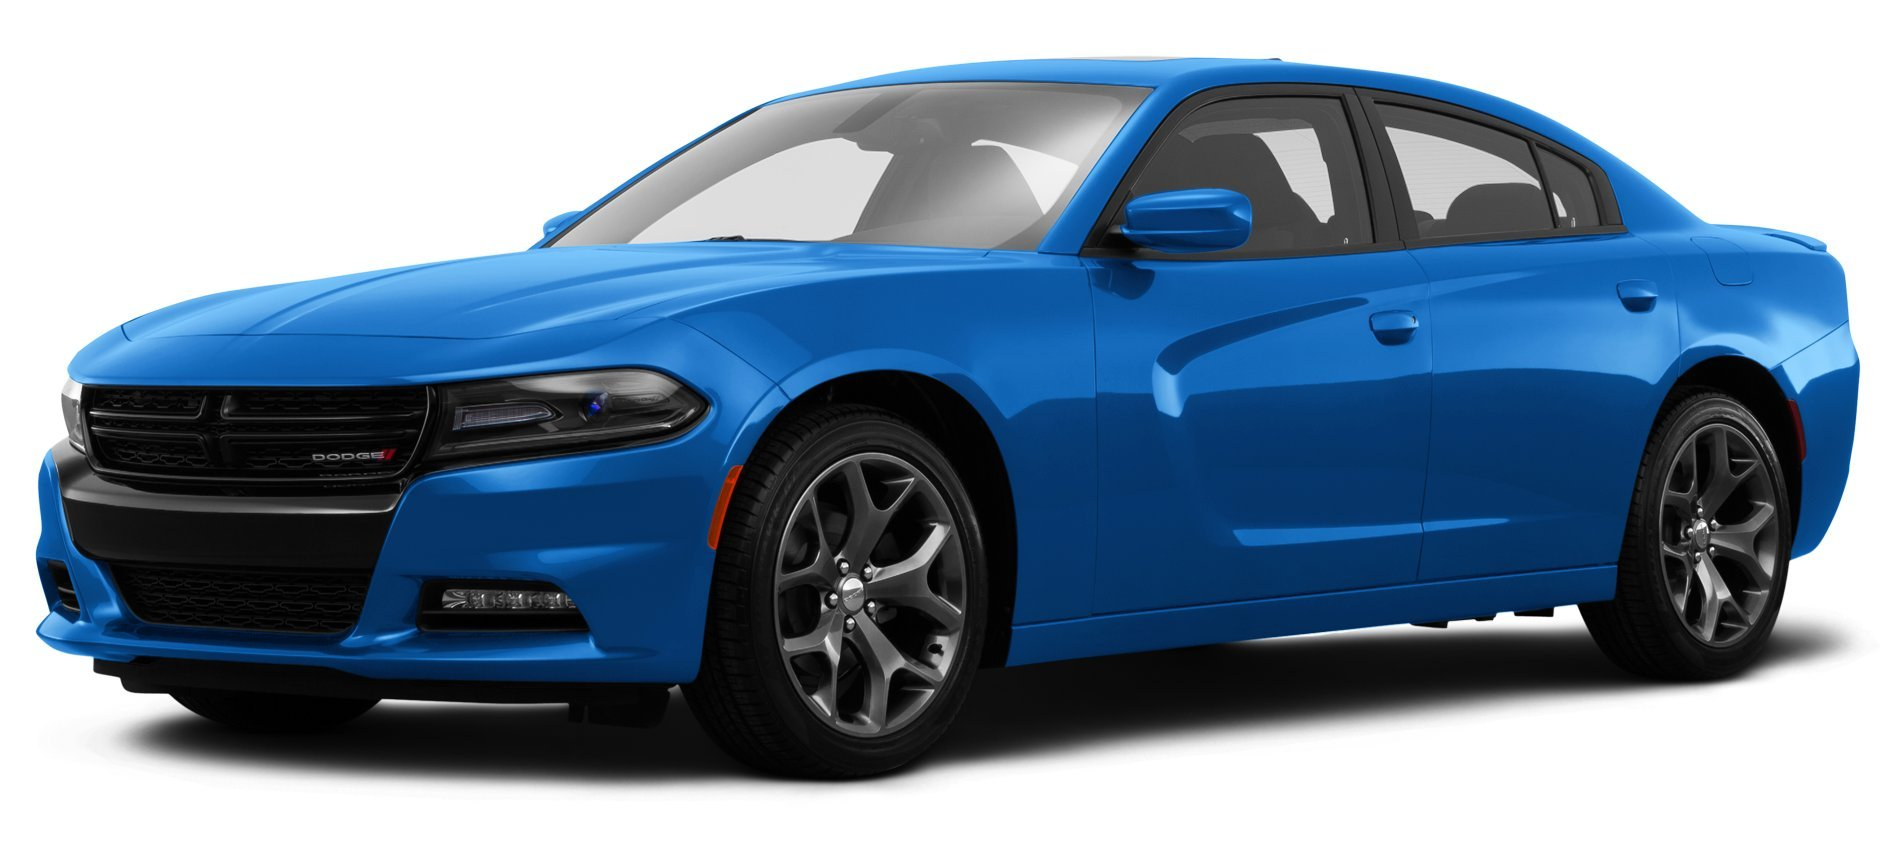 2016 dodge charger reviews images and specs vehicles. Black Bedroom Furniture Sets. Home Design Ideas